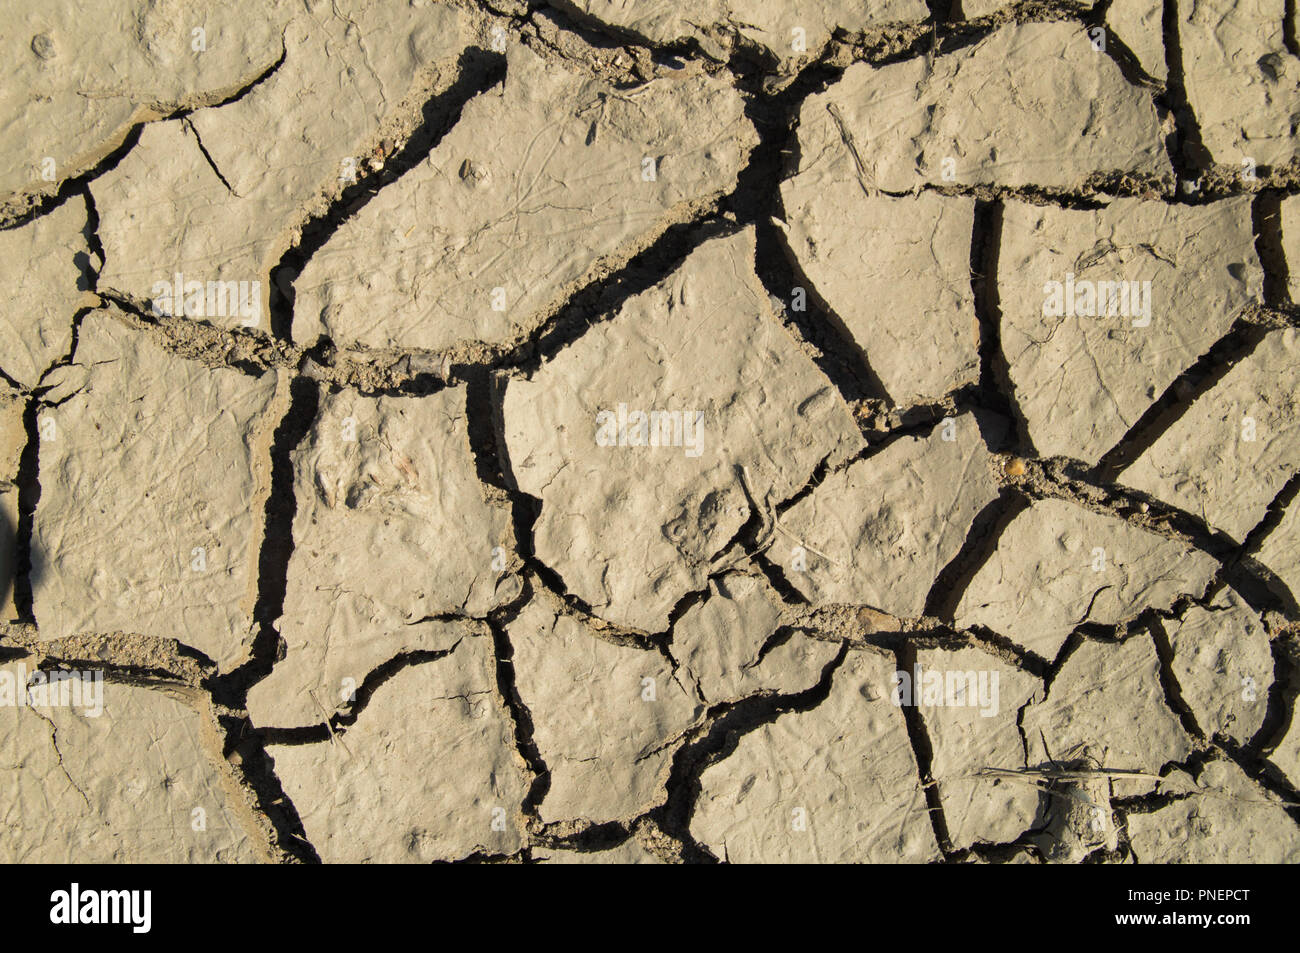 PATCH OF LAND OF DRY GROUND SHOT STRAIGHT FROM ABOVE - Stock Image